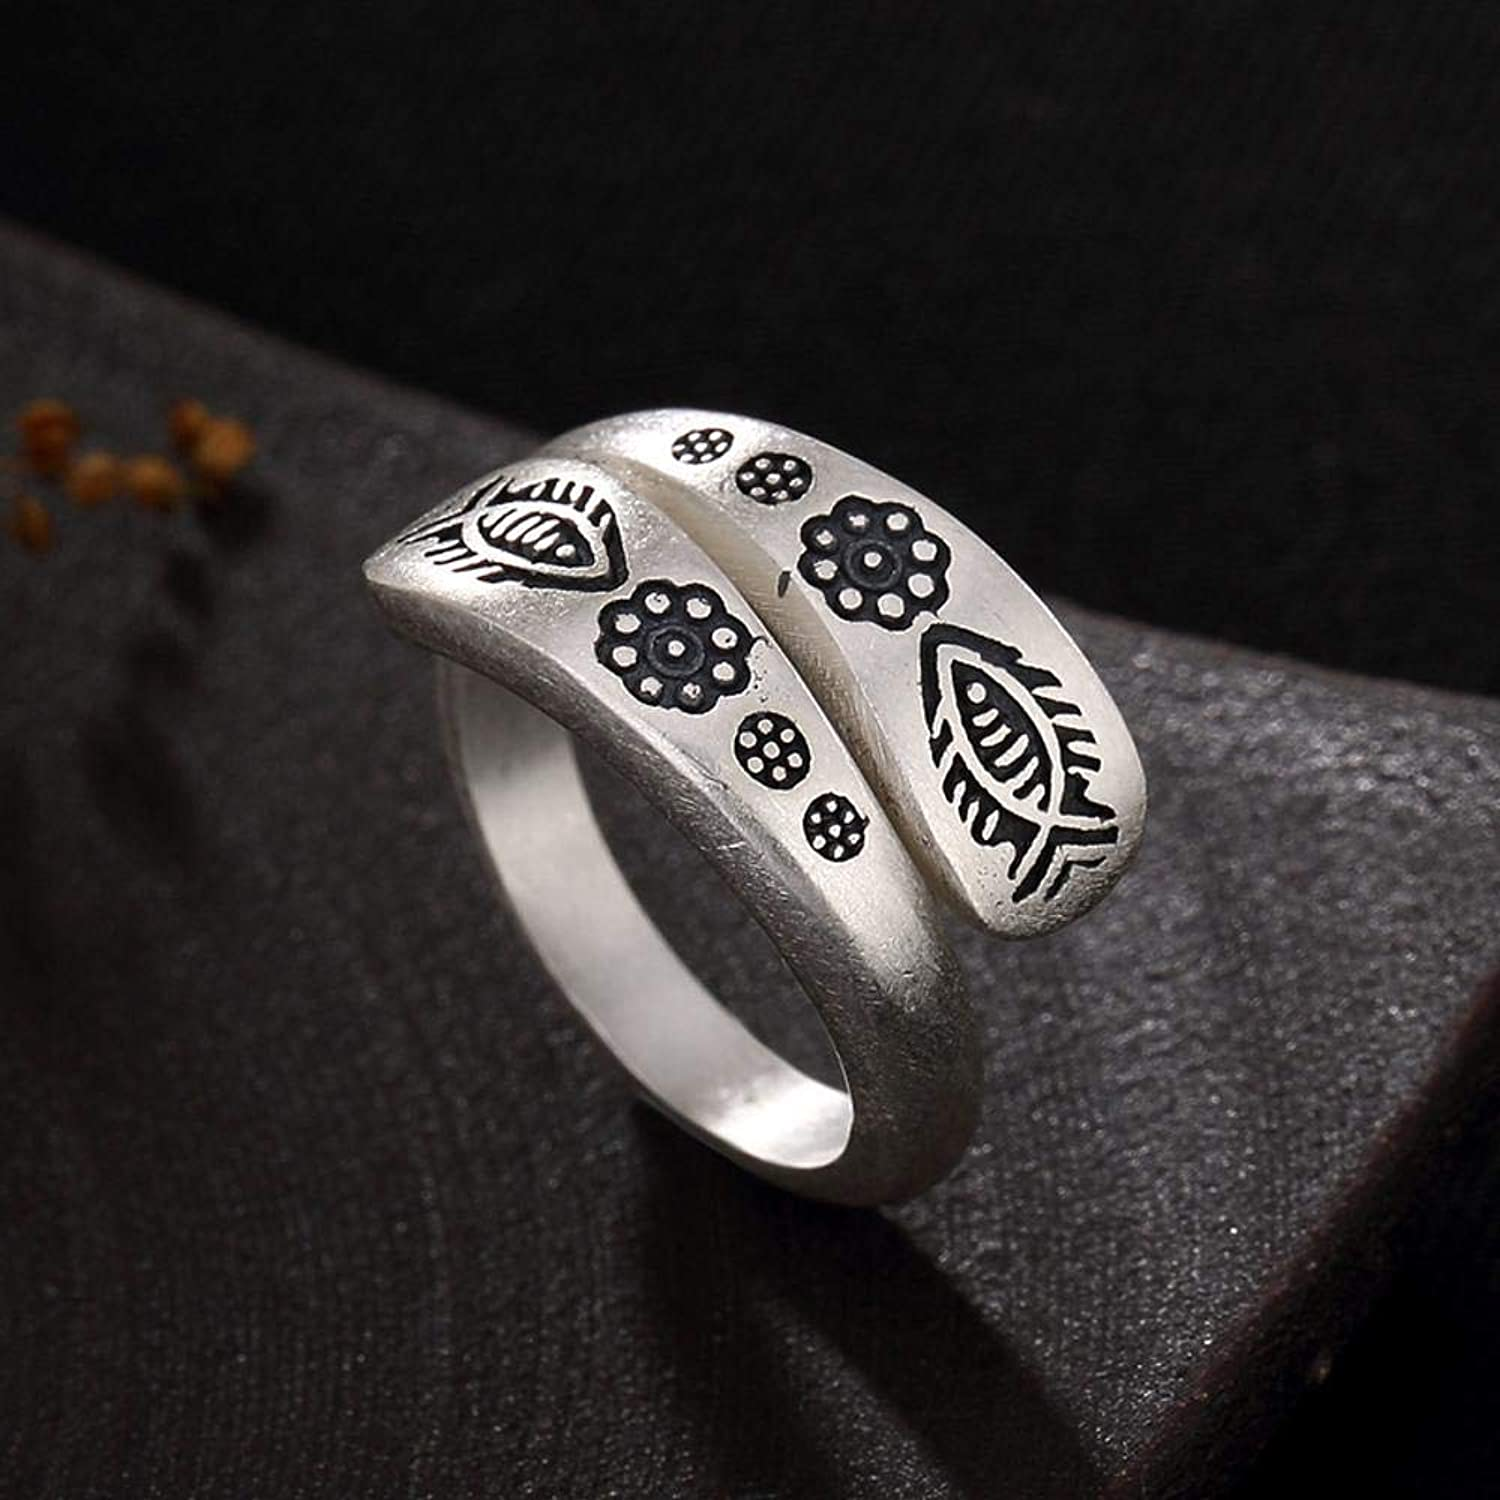 DTZH Rings Jewellery RingS990 Sterling Silver Indian National Wind Small Fish Pattern Relief Ring Give it to Dear People